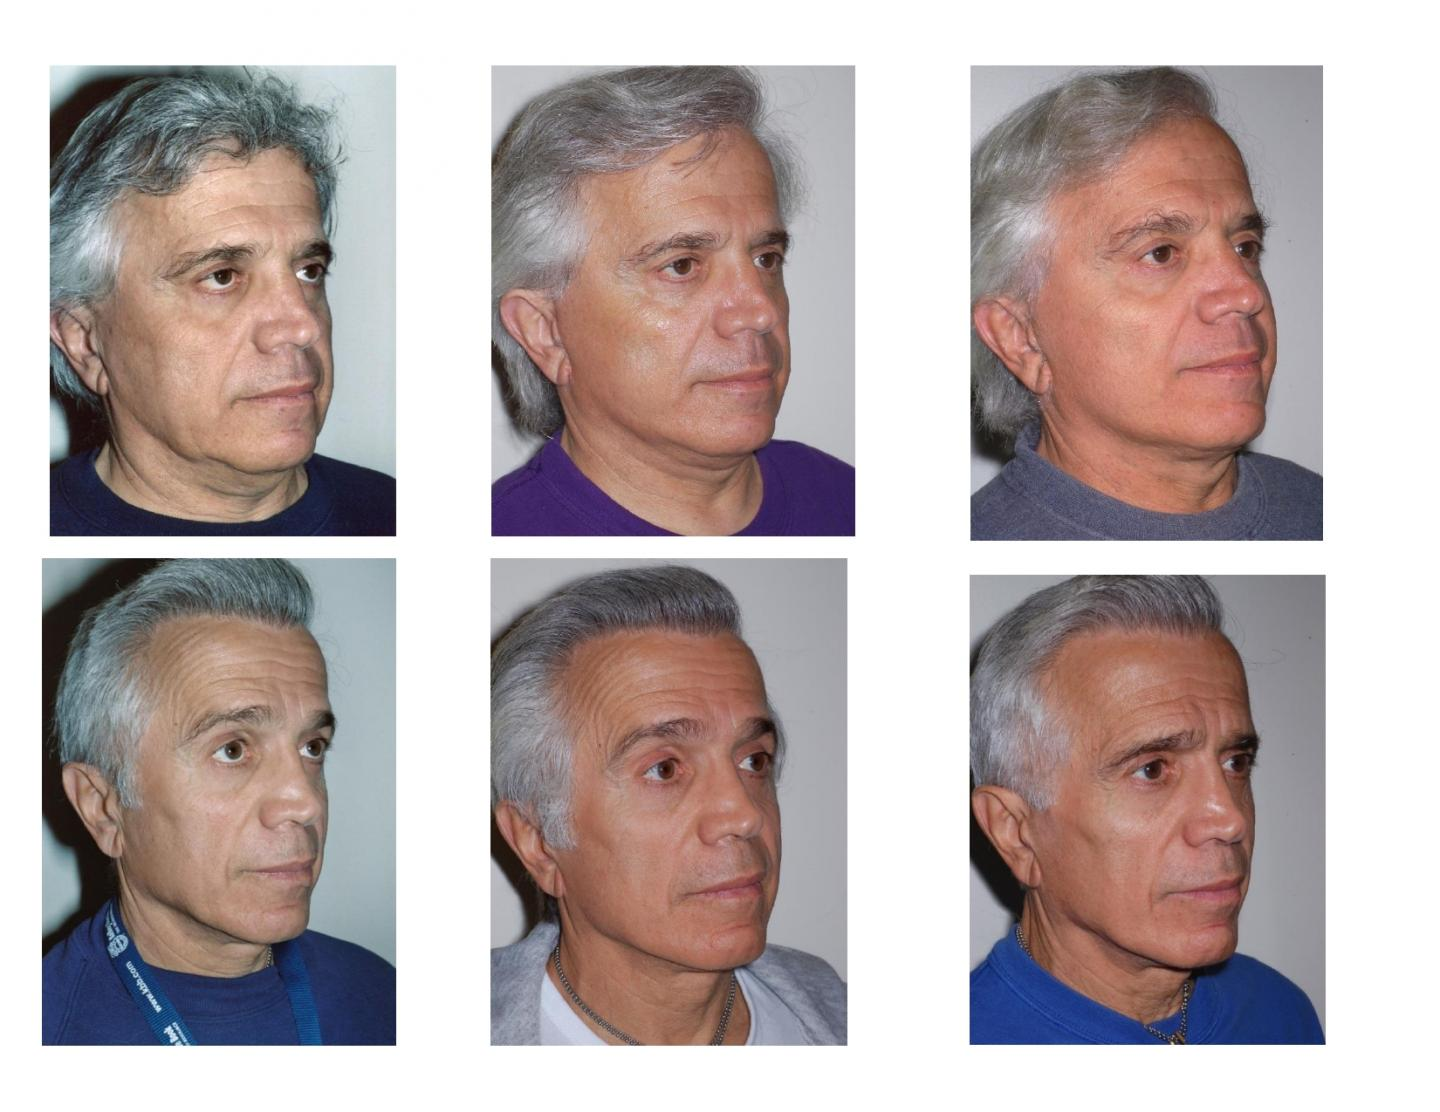 Male Twin Face Lifts -- Pre Op and Post Op